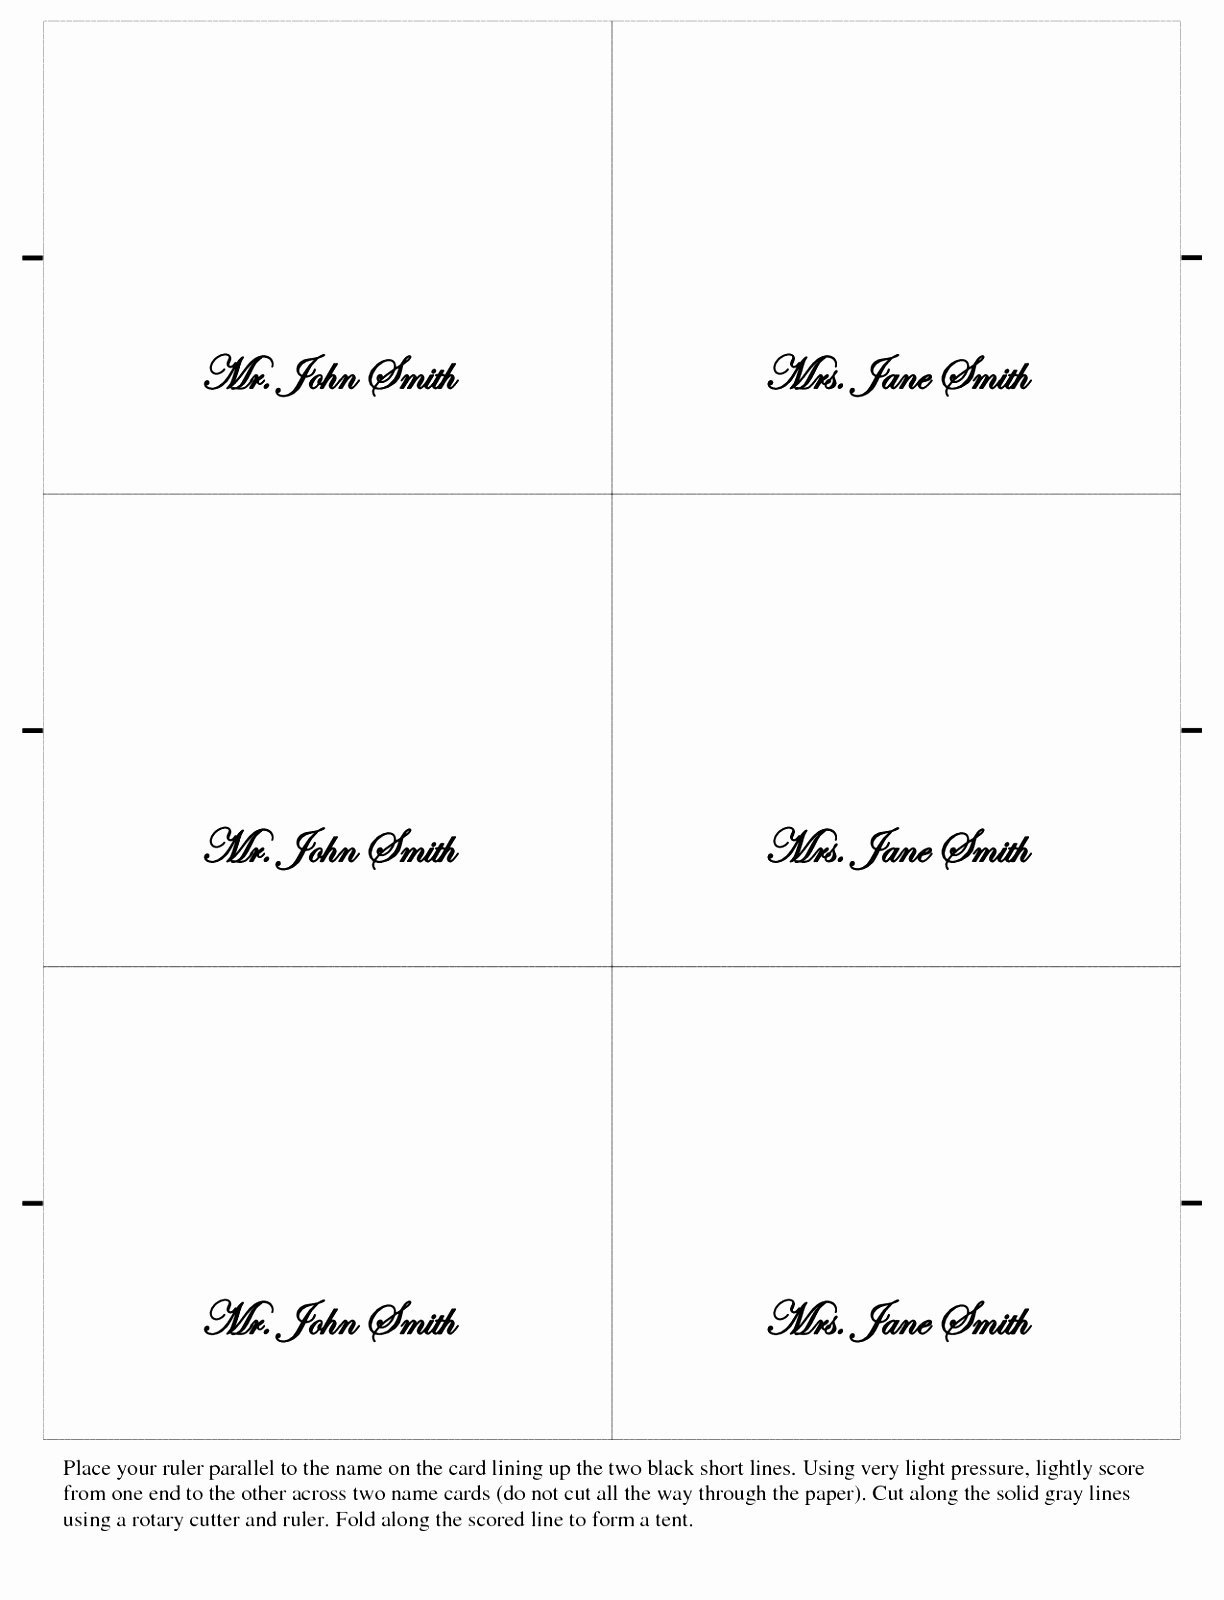 Wedding Table Card Template Inspirational 10 Wedding Place Card Templates Free Download Ueewo